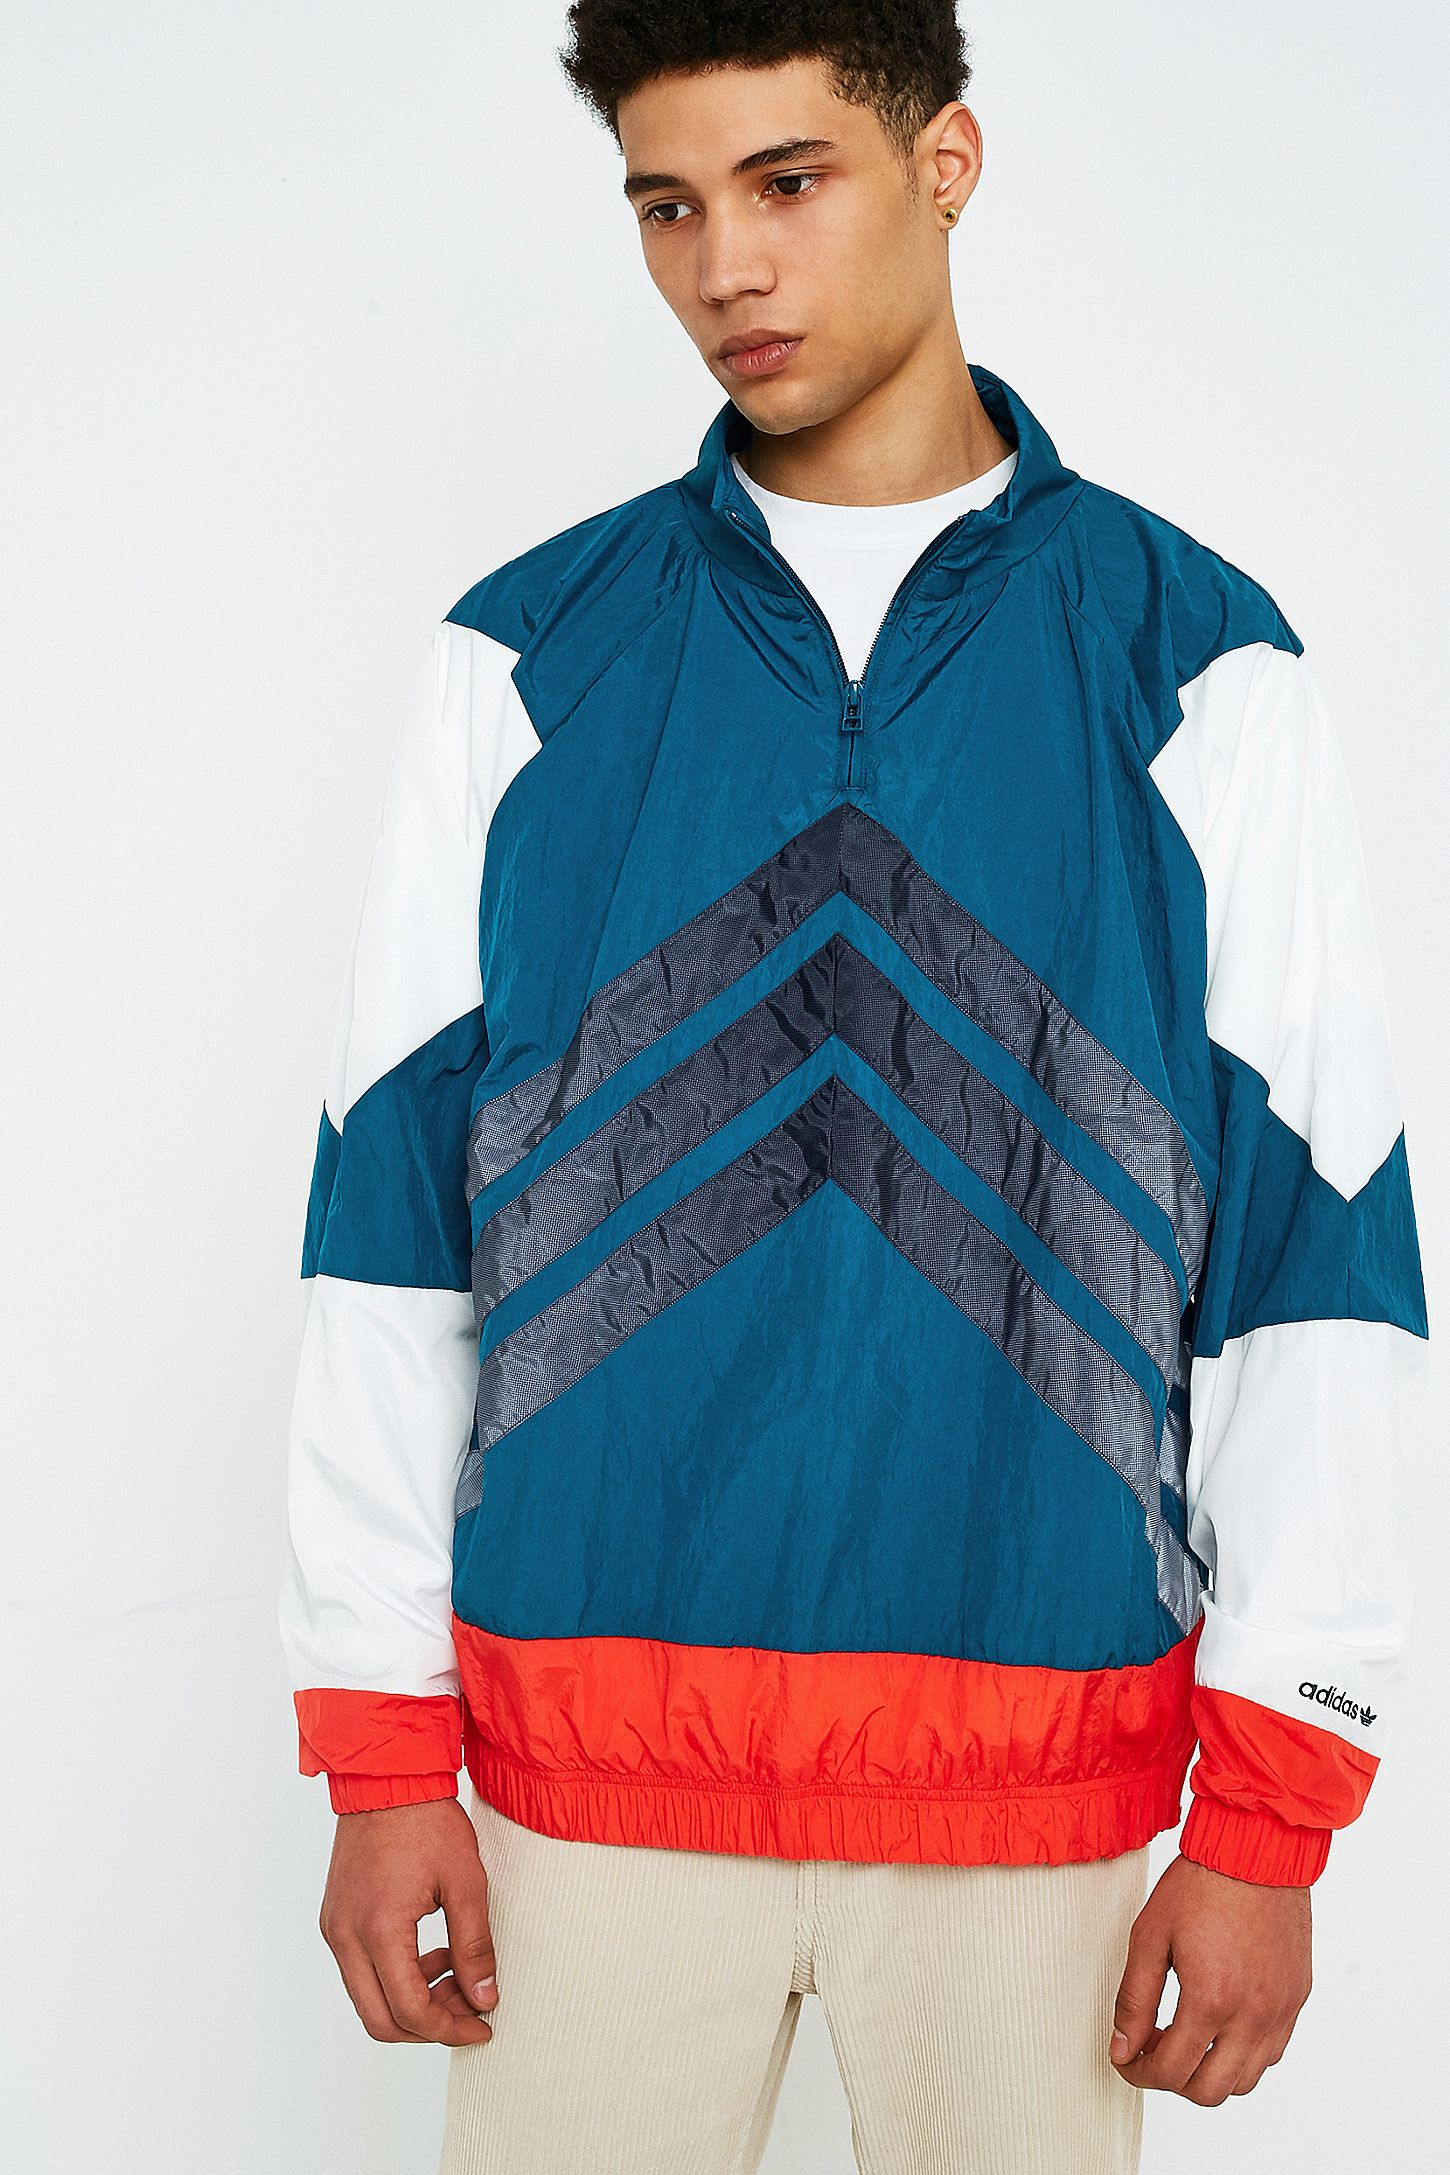 b2f4b4ac3f73 adidas V Stripes Windbreaker Jacket. Click on image to zoom. Hover to zoom.  Double Tap to Zoom